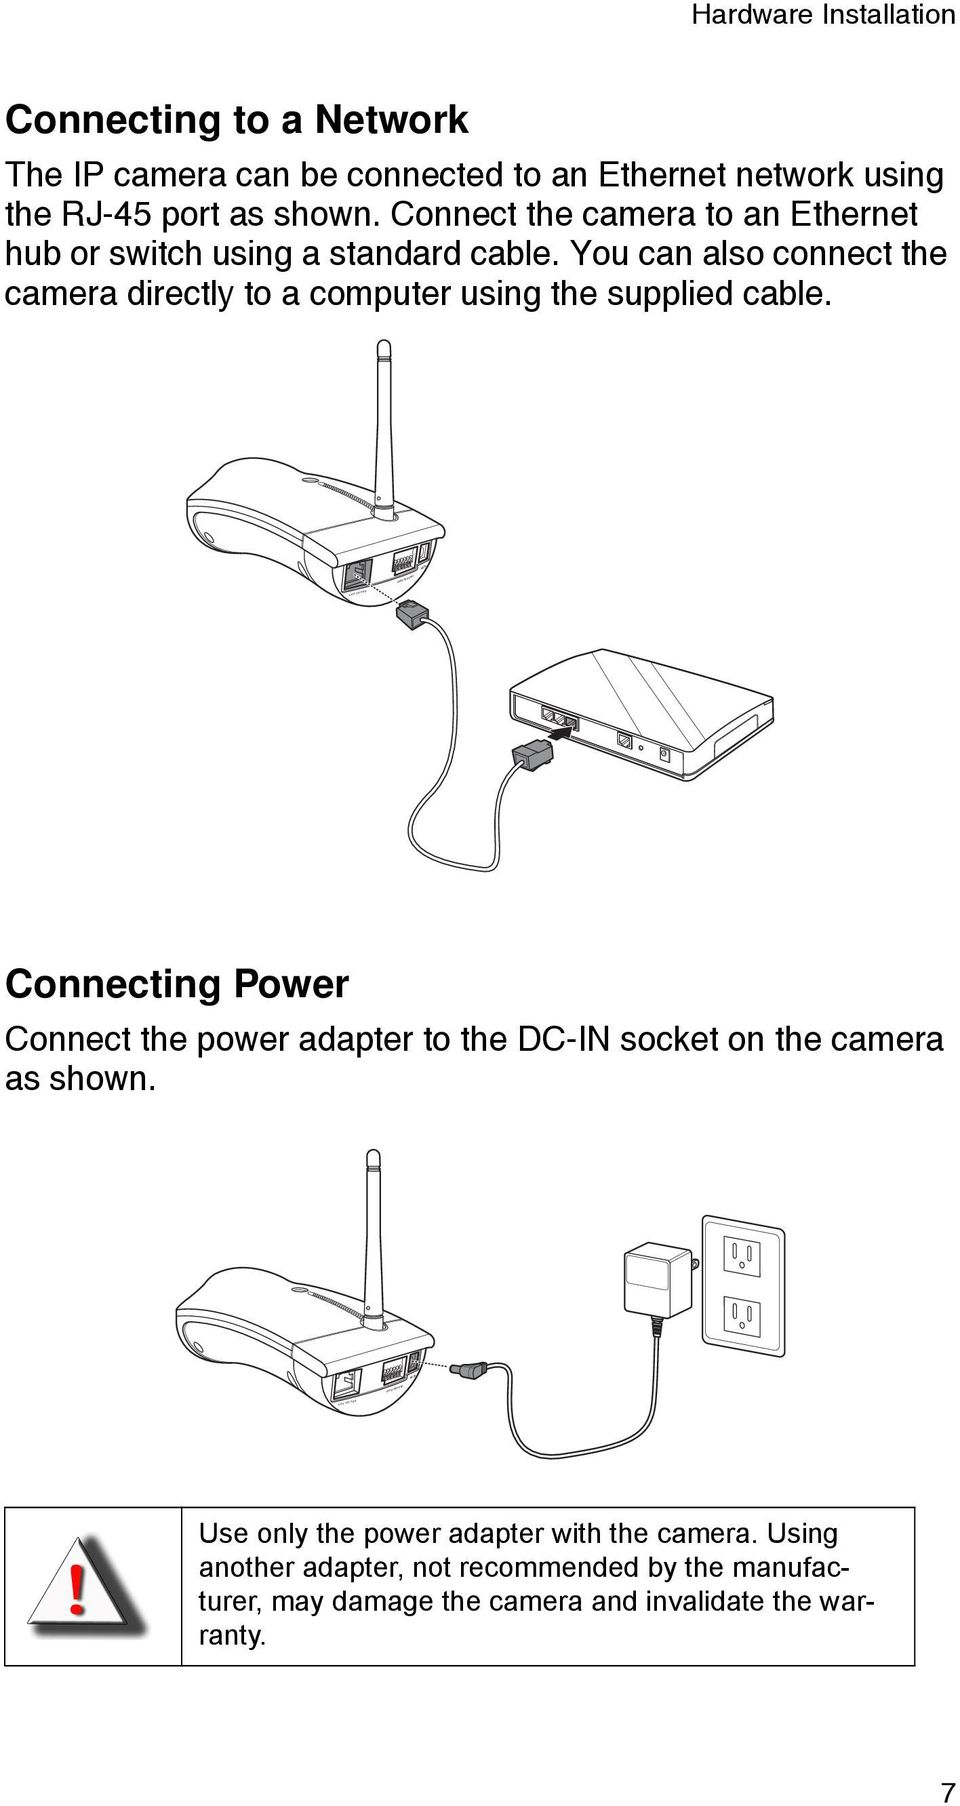 You can also connect the camera directly to a computer using the supplied cable.